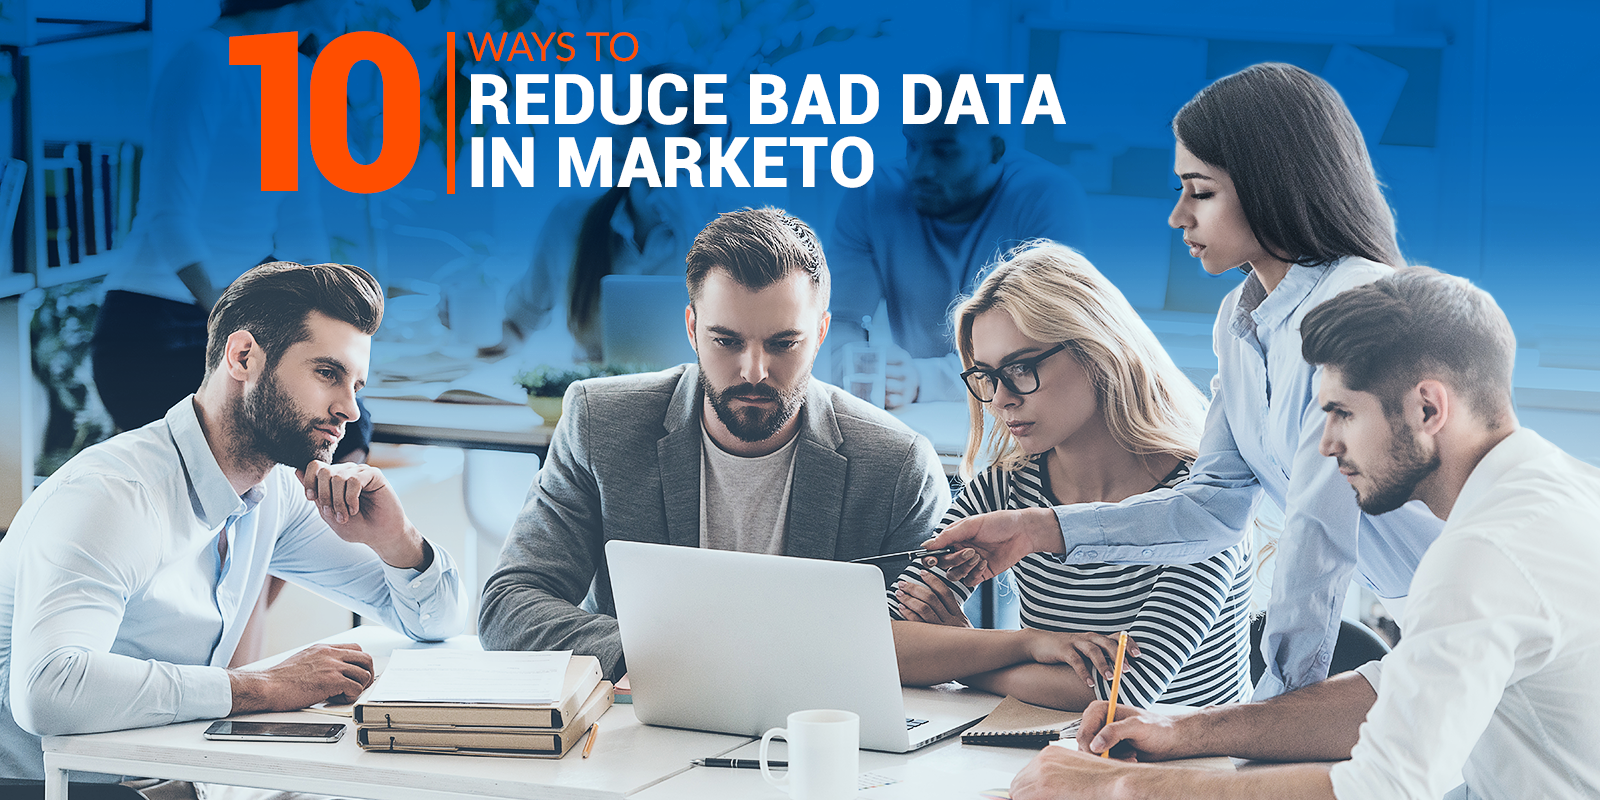 10 Ways To Reduce Bad Data in Marketo